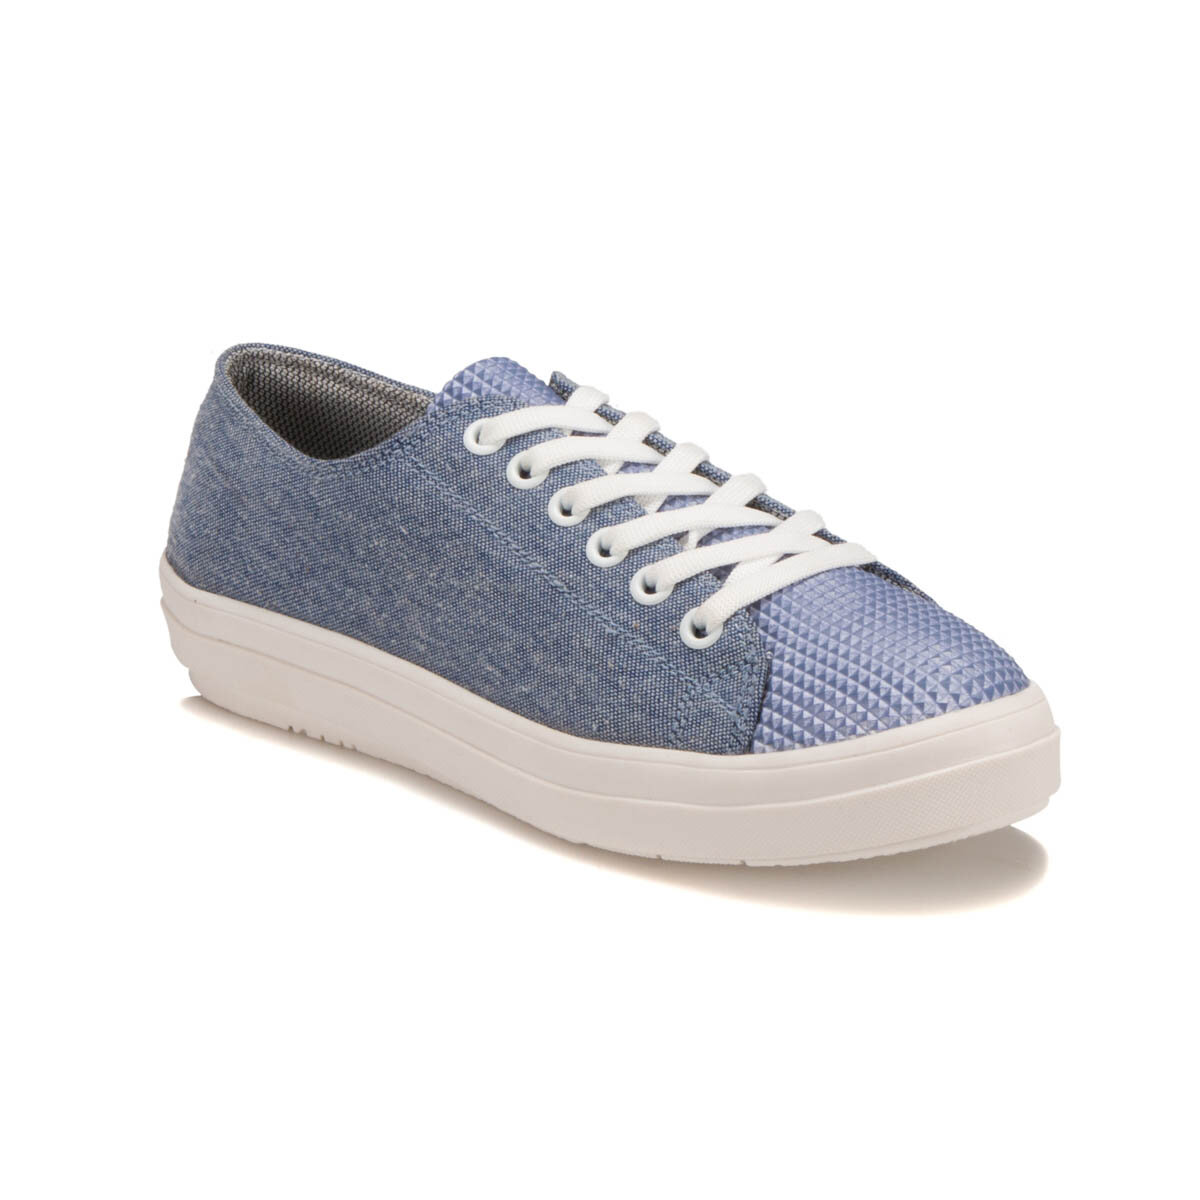 FLO U2601 Blue Women 'S Sneaker Shoes Art Bella